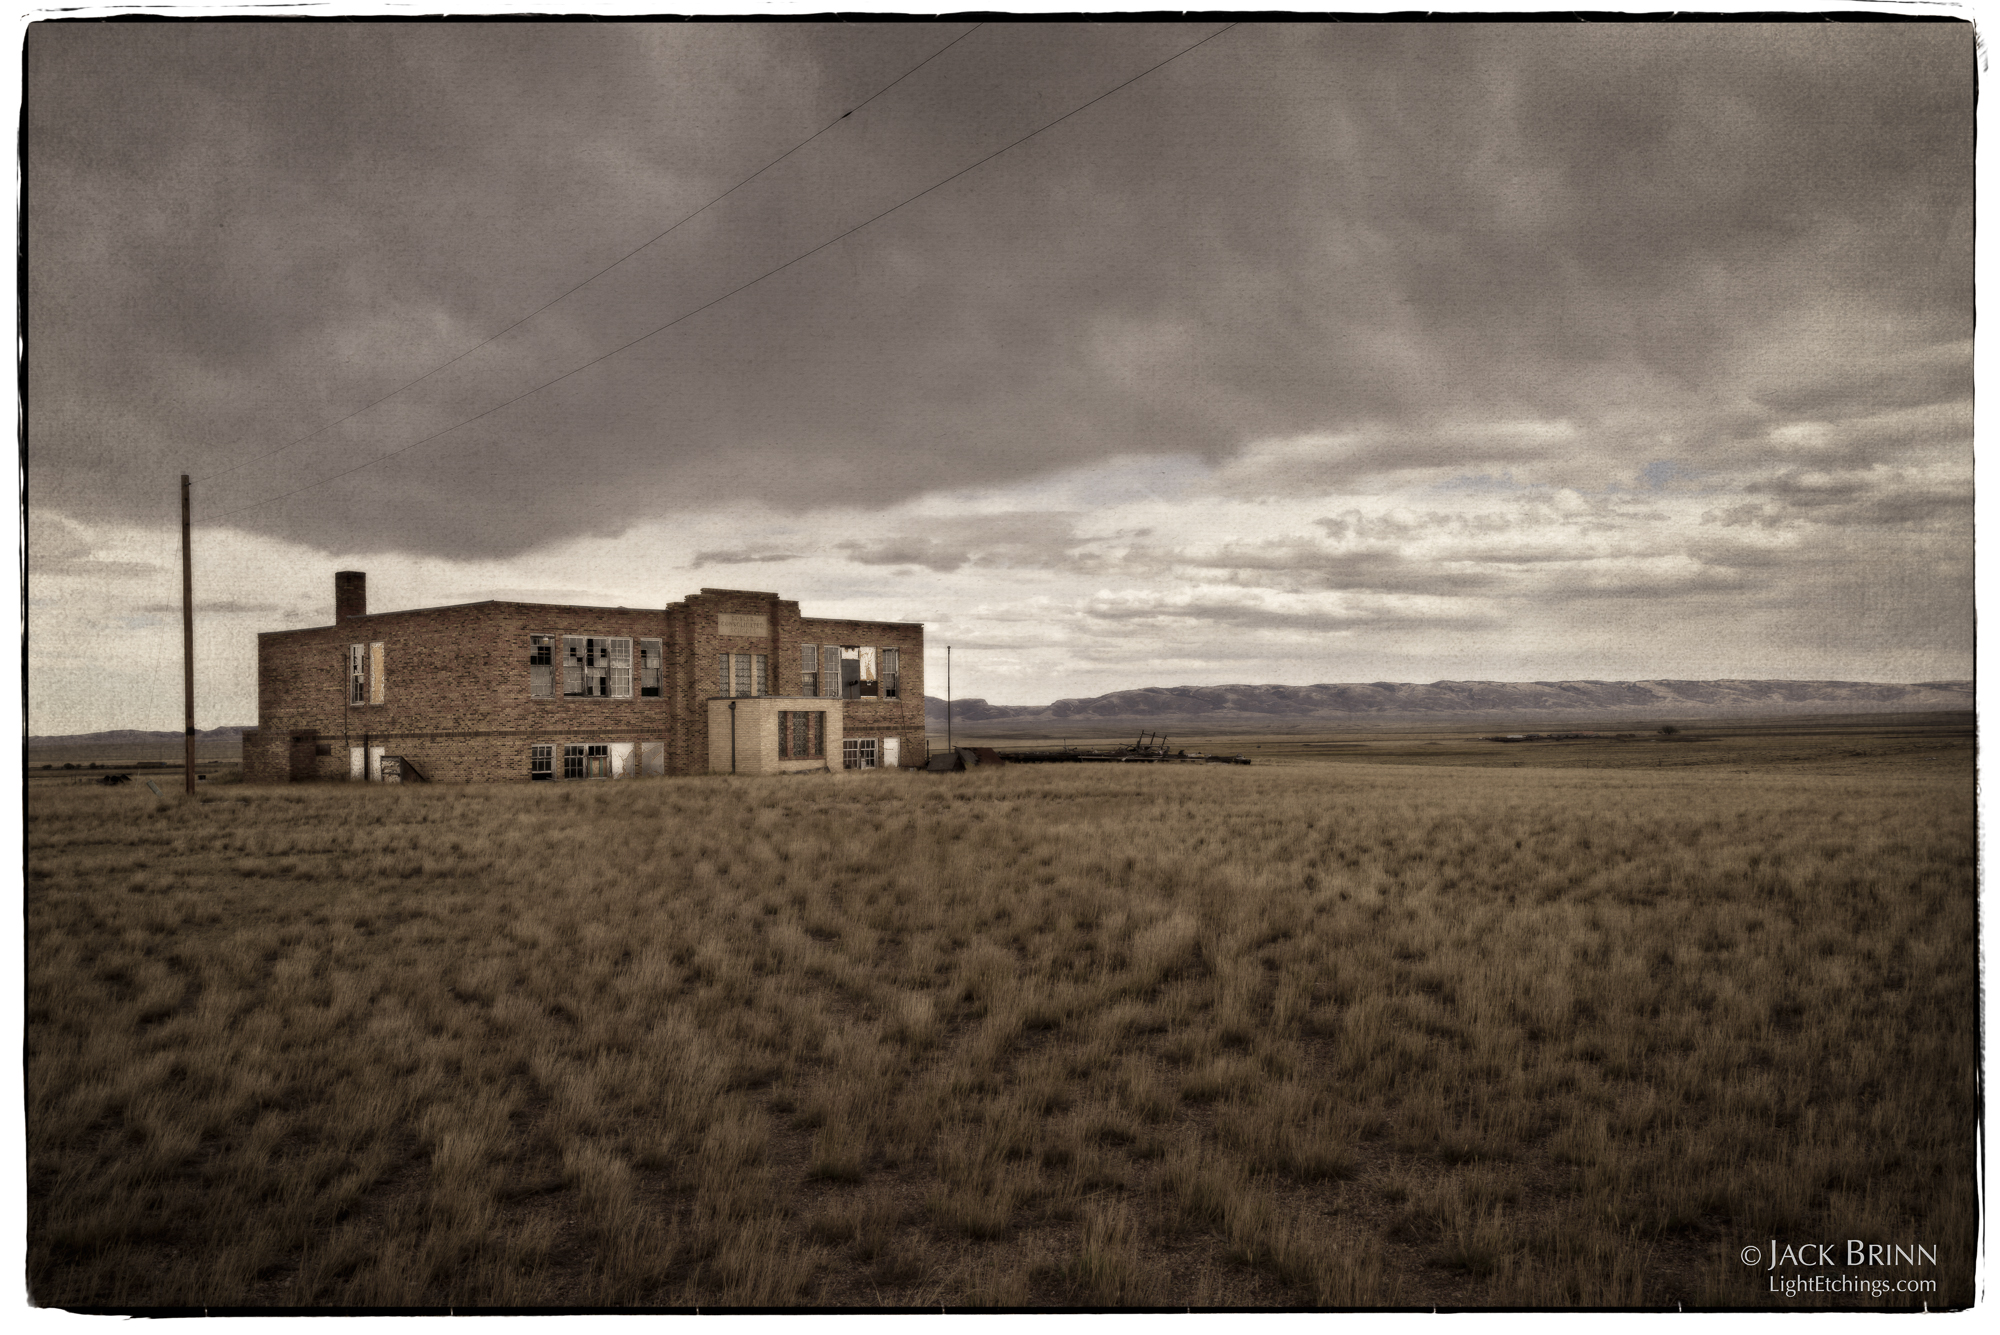 The Bosler Consolidated School sits starkly empty on the plains on the north side of town. There are miles of open space between the school and the distant Laramie Range forming the horizon. There's a road over there in the distance, where cars are mere specks.